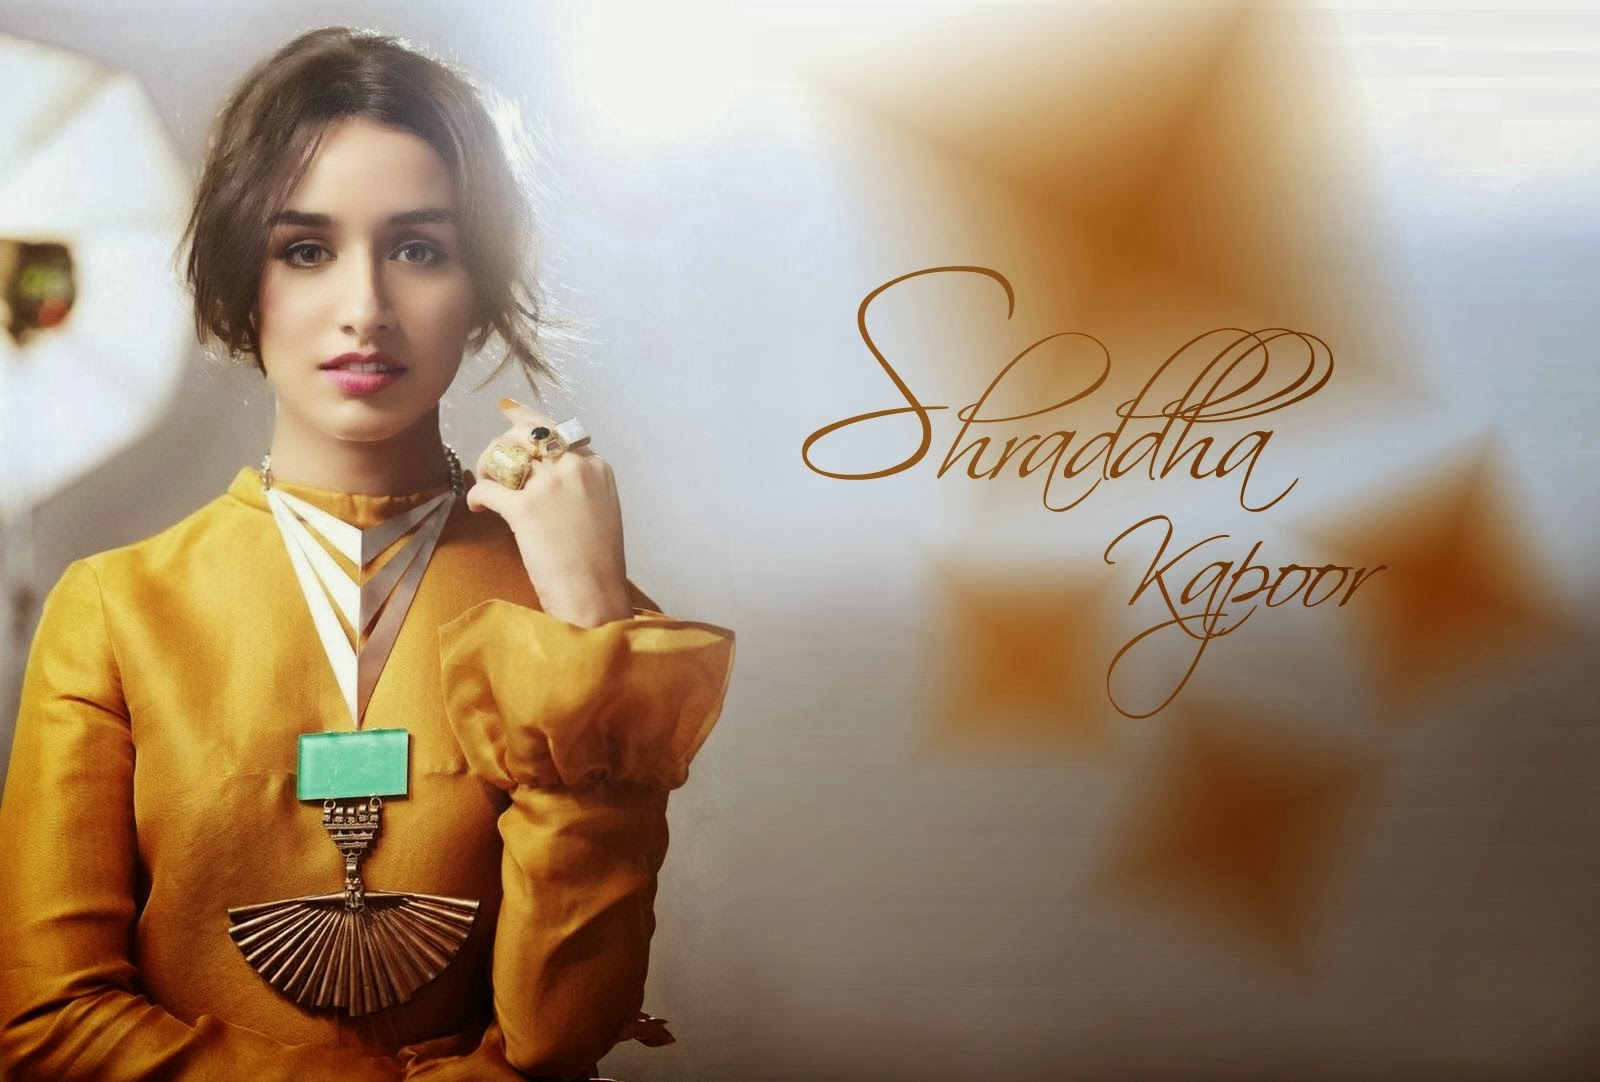 Shraddha Kapoor HD Wallpapers Download High Definition Desktop 1600x1082